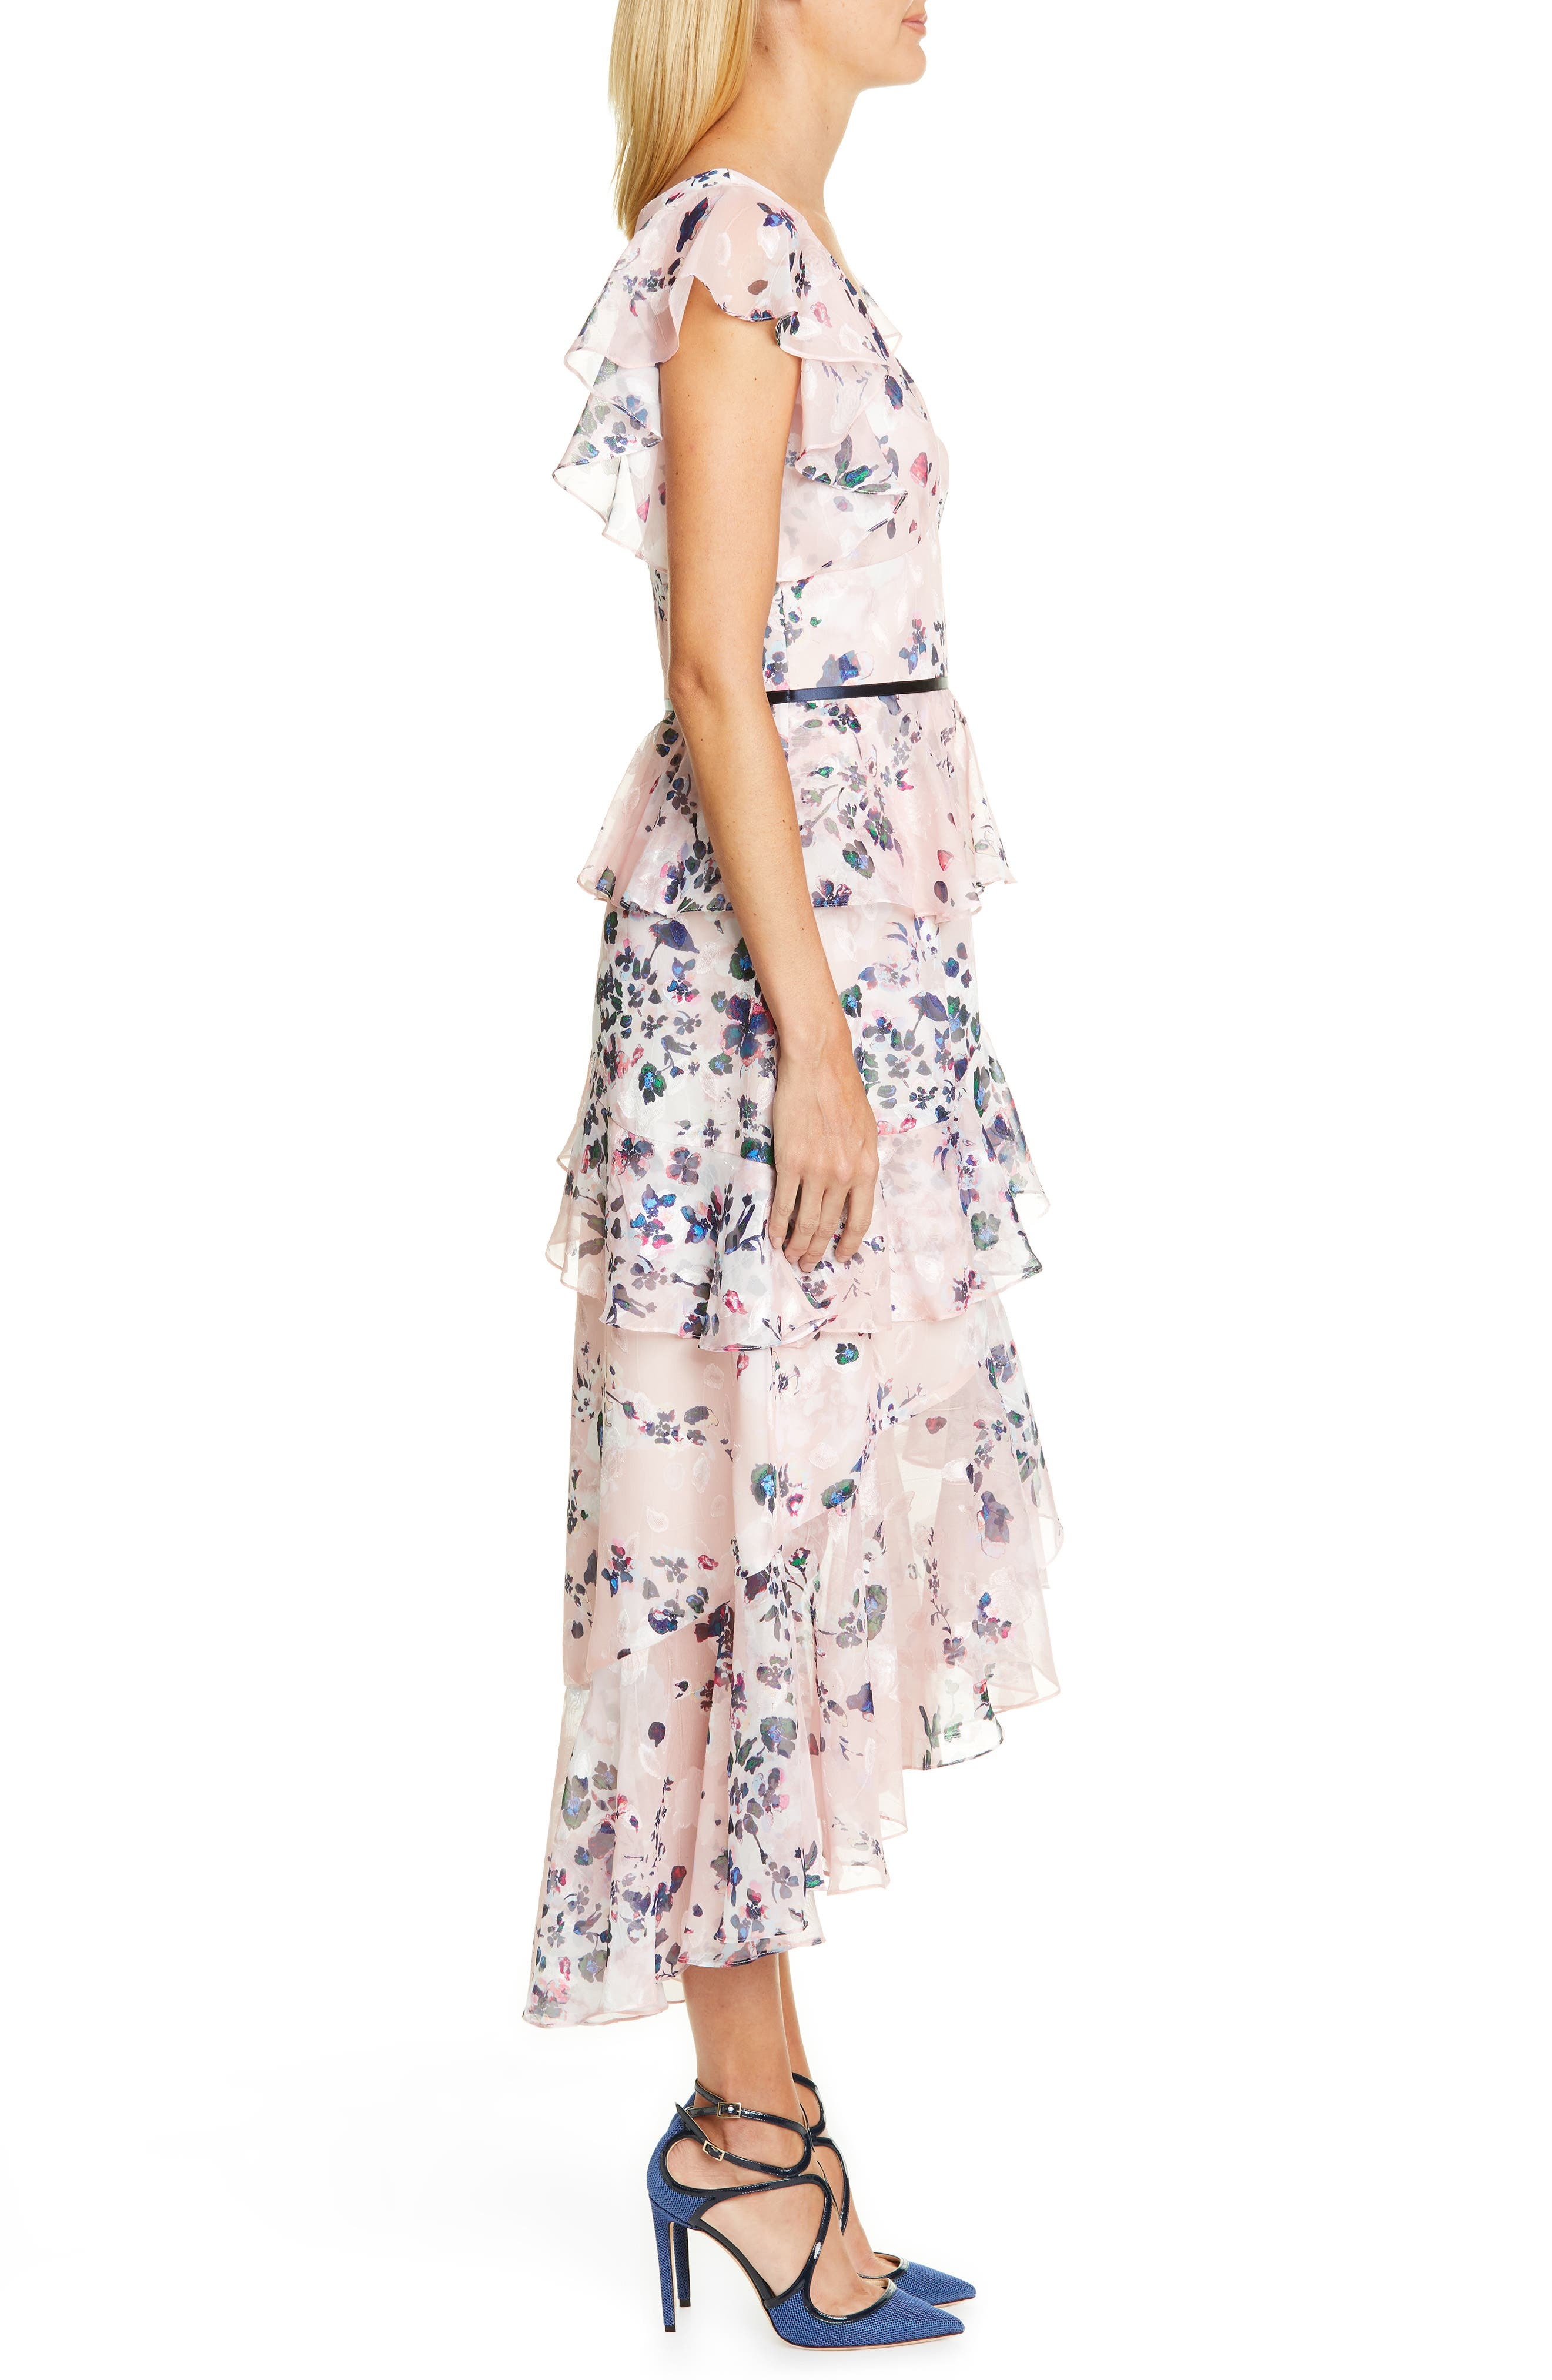 MARCHESA NOTTE, Floral Ruffle Tiered Midi Dress, Alternate thumbnail 3, color, 680